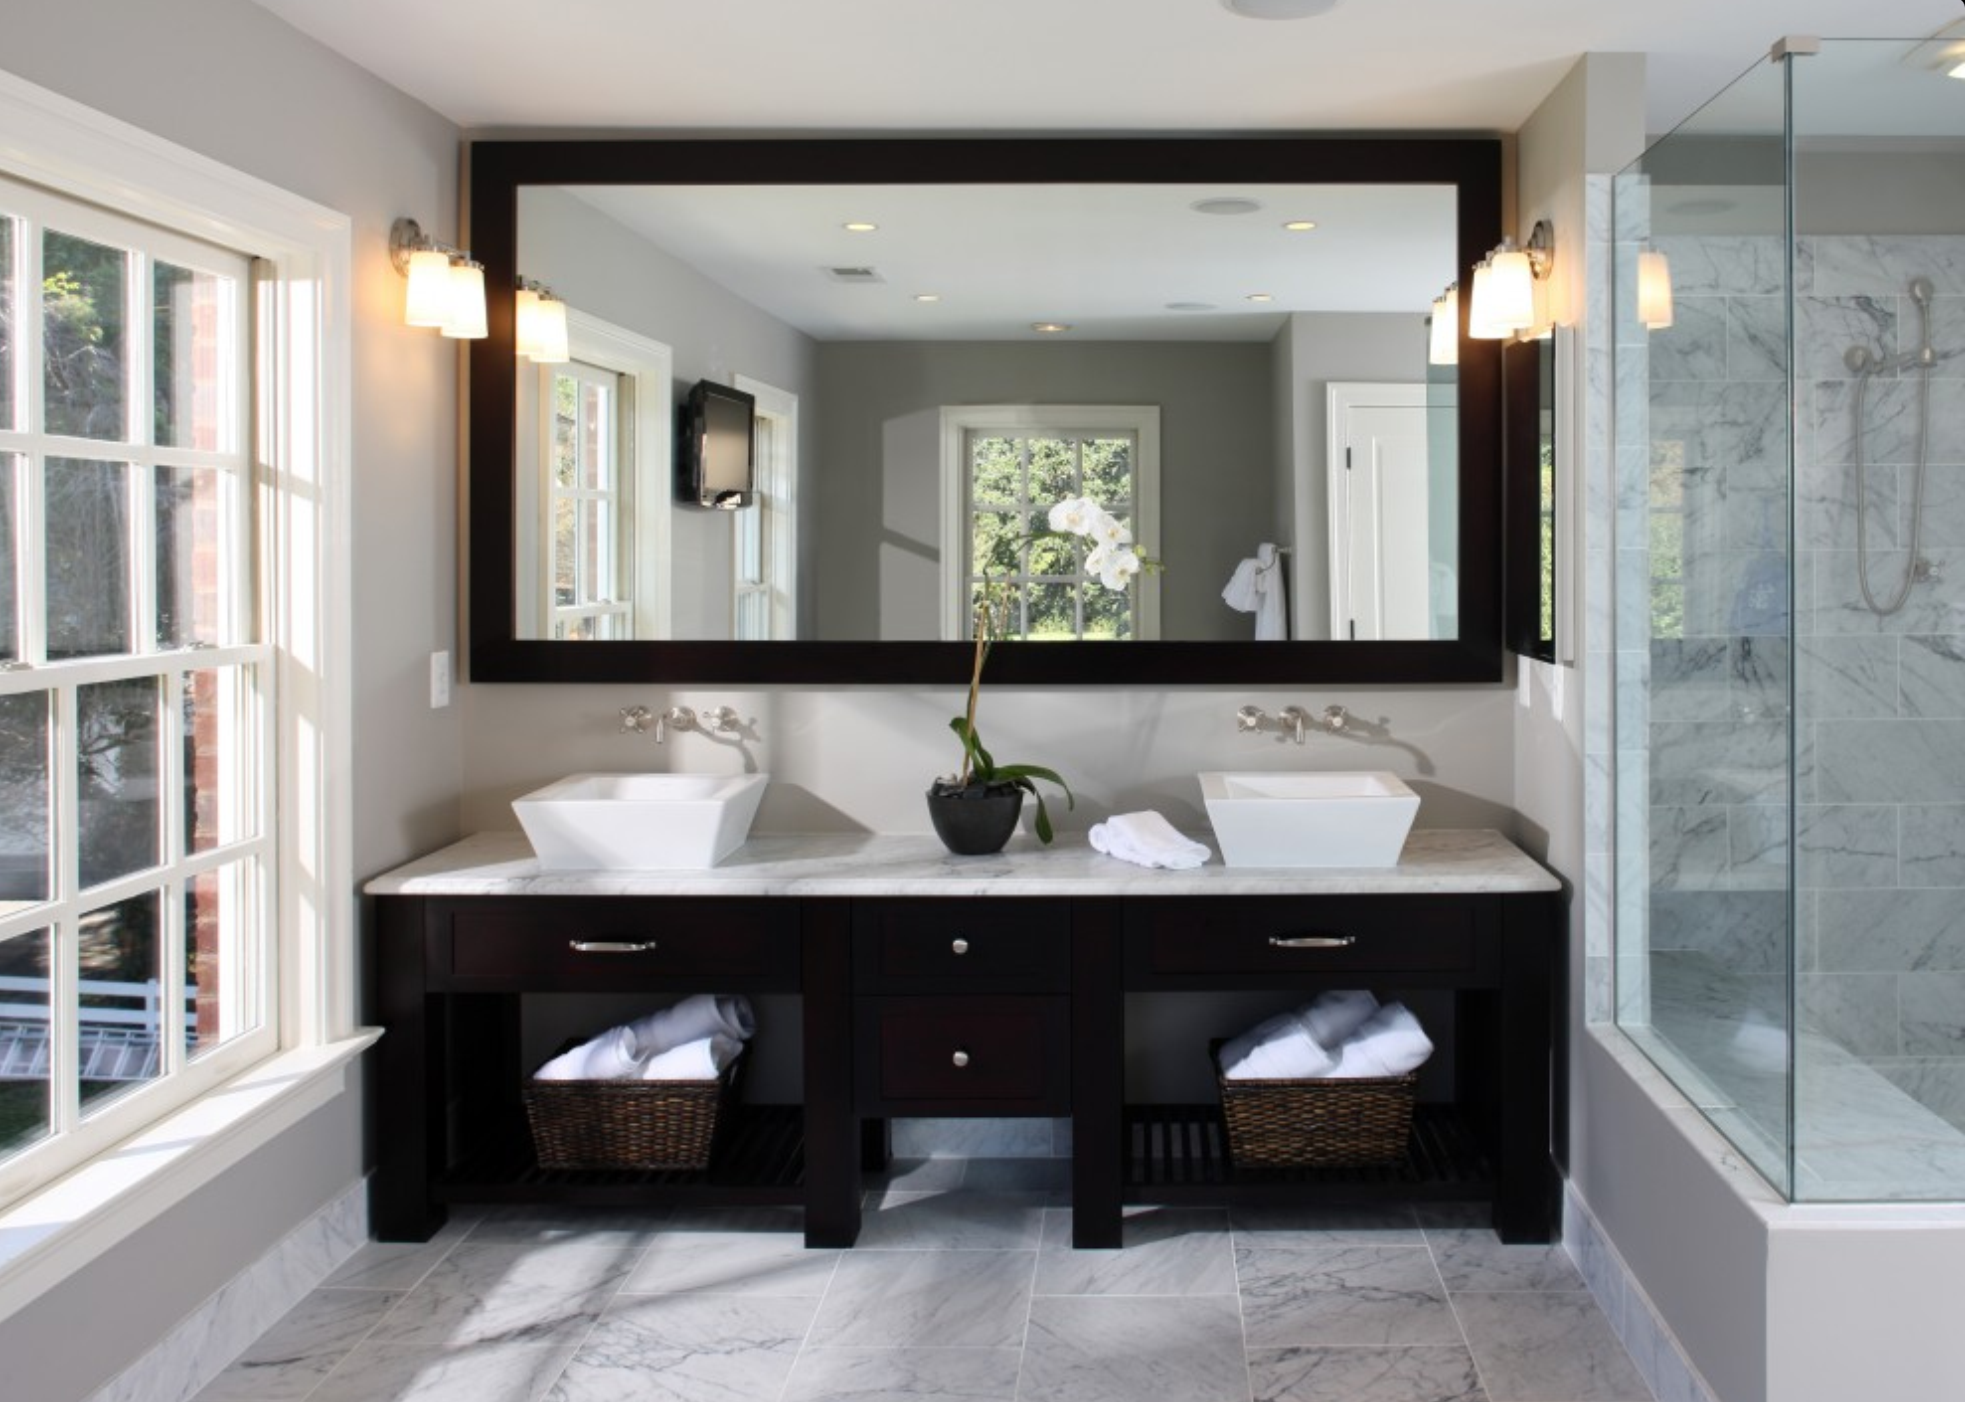 Bathroom Remodeling Trends 2015 2015/2016 bathroom remodel trends | homeadvisor